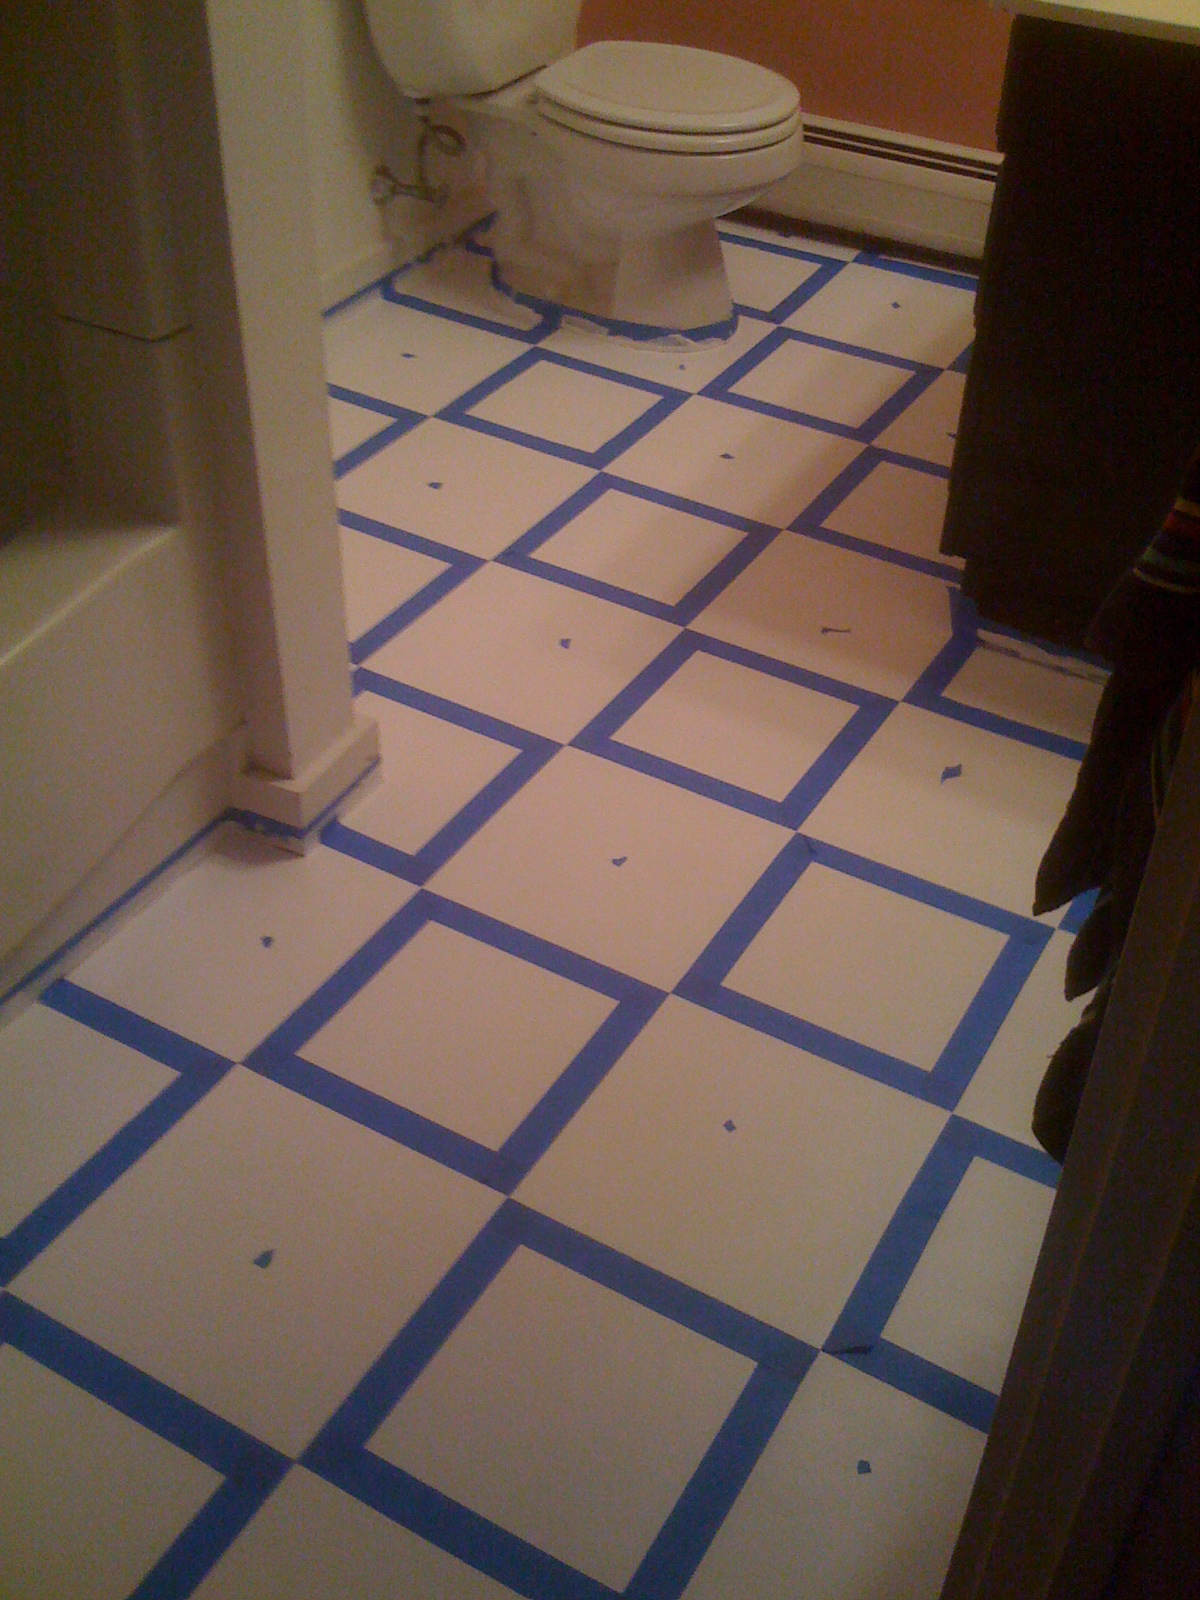 Diy painting old vinyl floor tiles mary wiseman designs step 7 painting doublecrazyfo Image collections